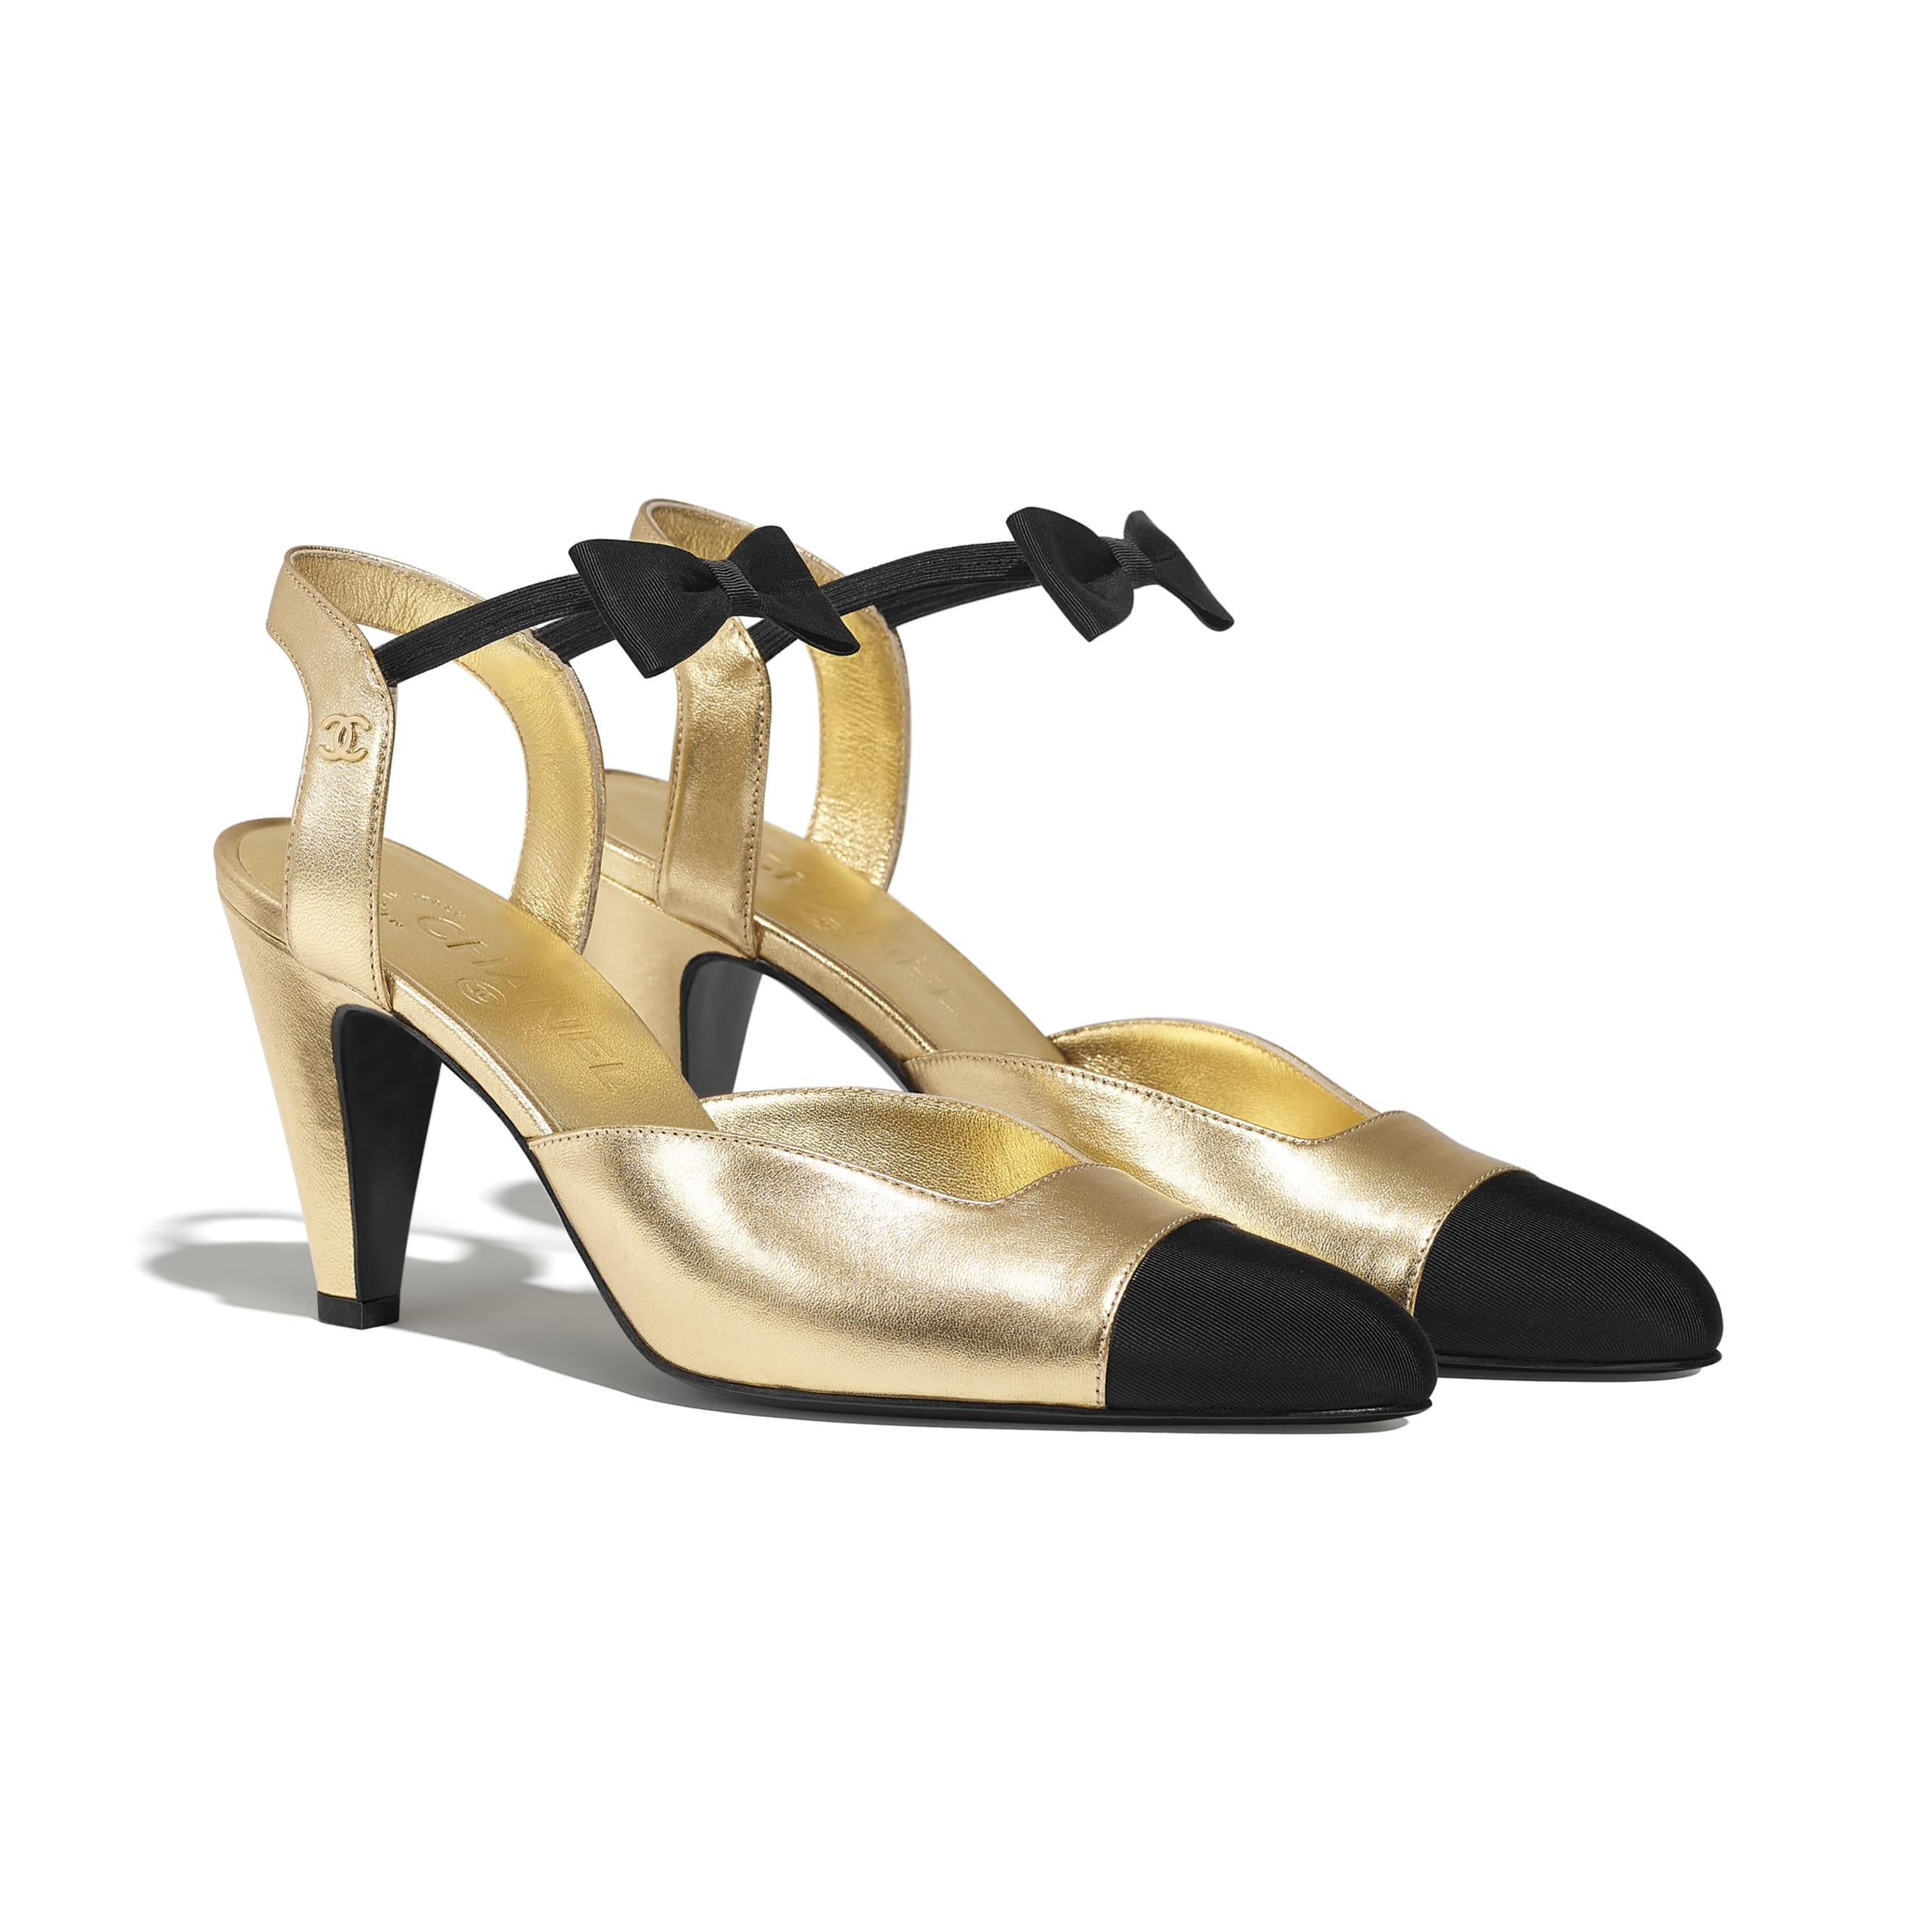 Pumps - Gold & Black - Laminated Lambskin & Grosgrain - CHANEL - Alternative view - see standard sized version